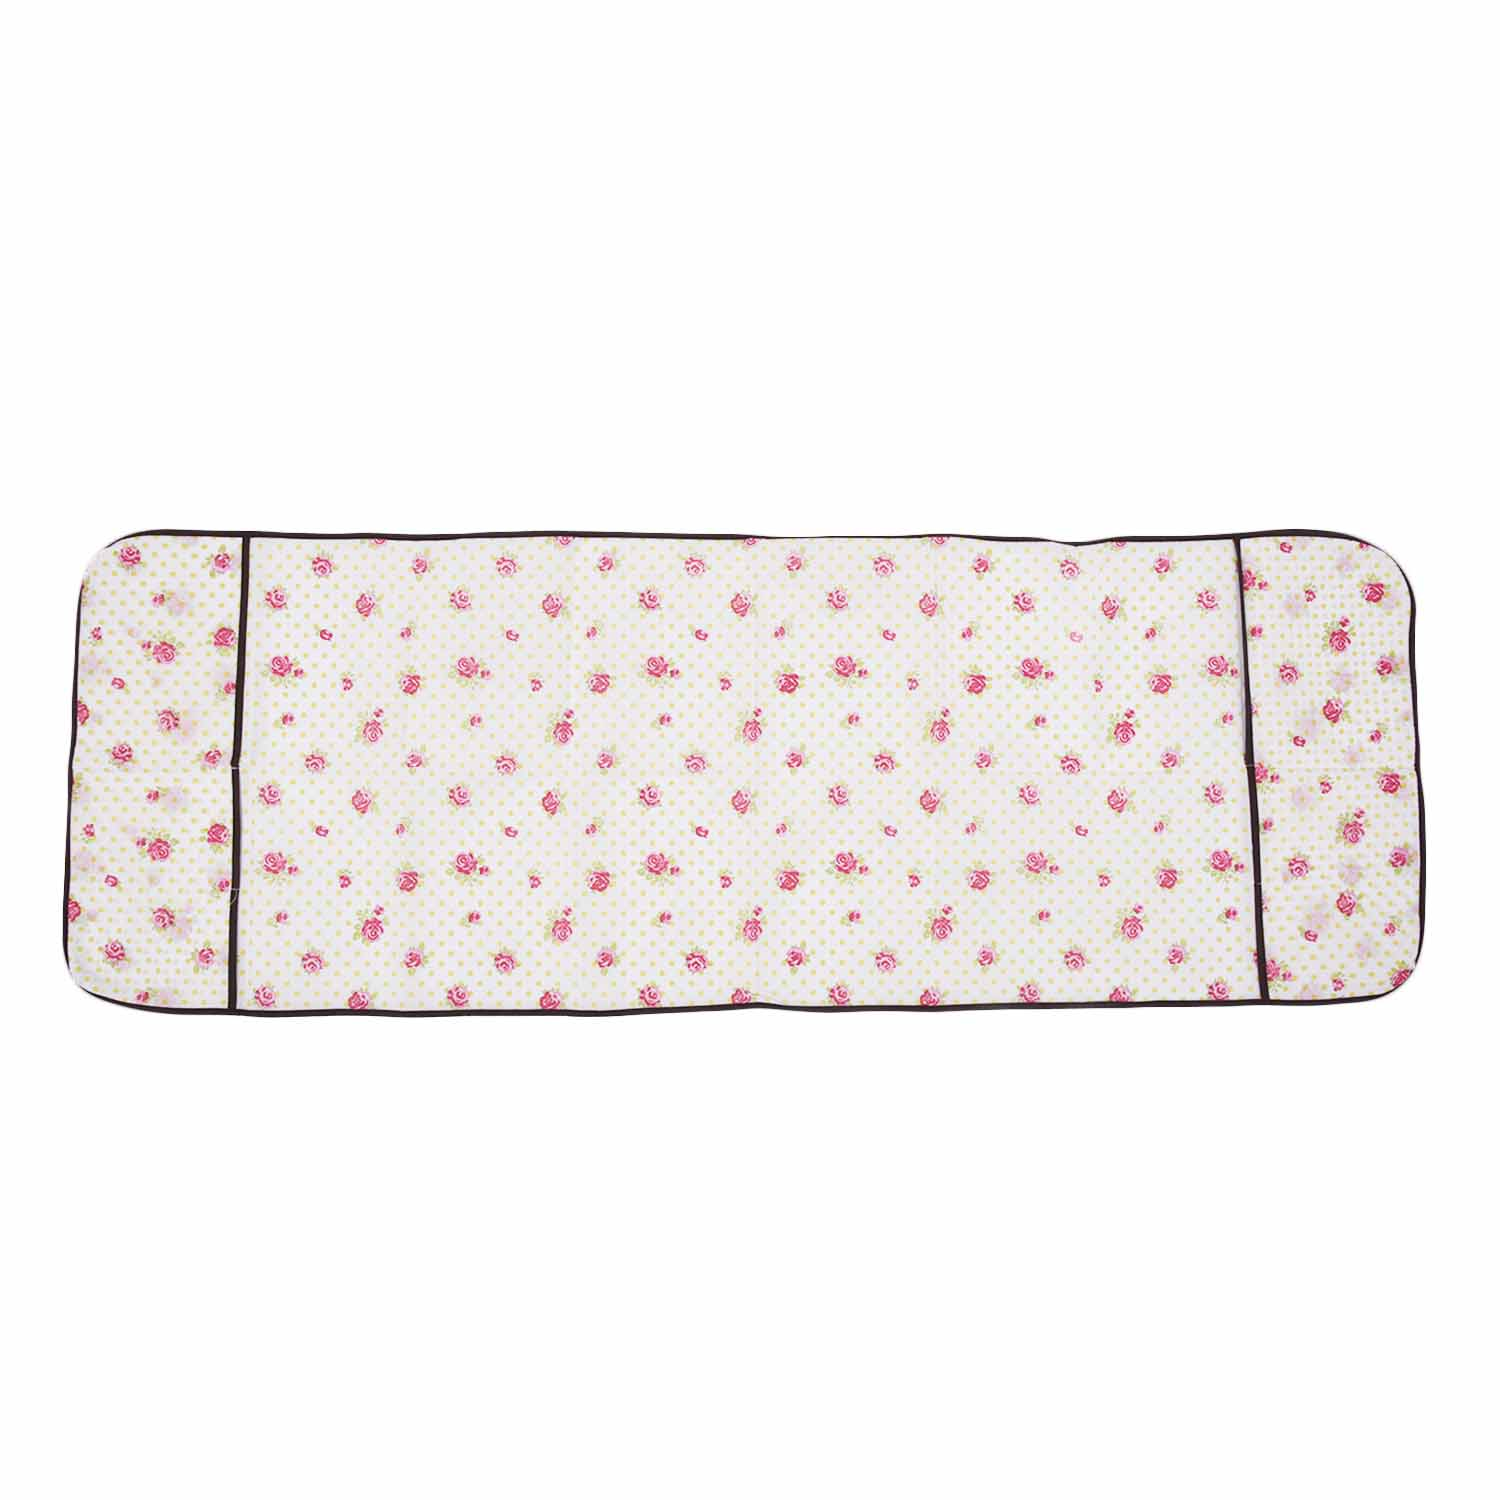 HOT SALE 1PC Refrigerator Dust Proof Cover Nonwoven Multi-use Pouch Storage Organizer Bag (Pink cherry) 150*50cm star print refrigerator dust cover